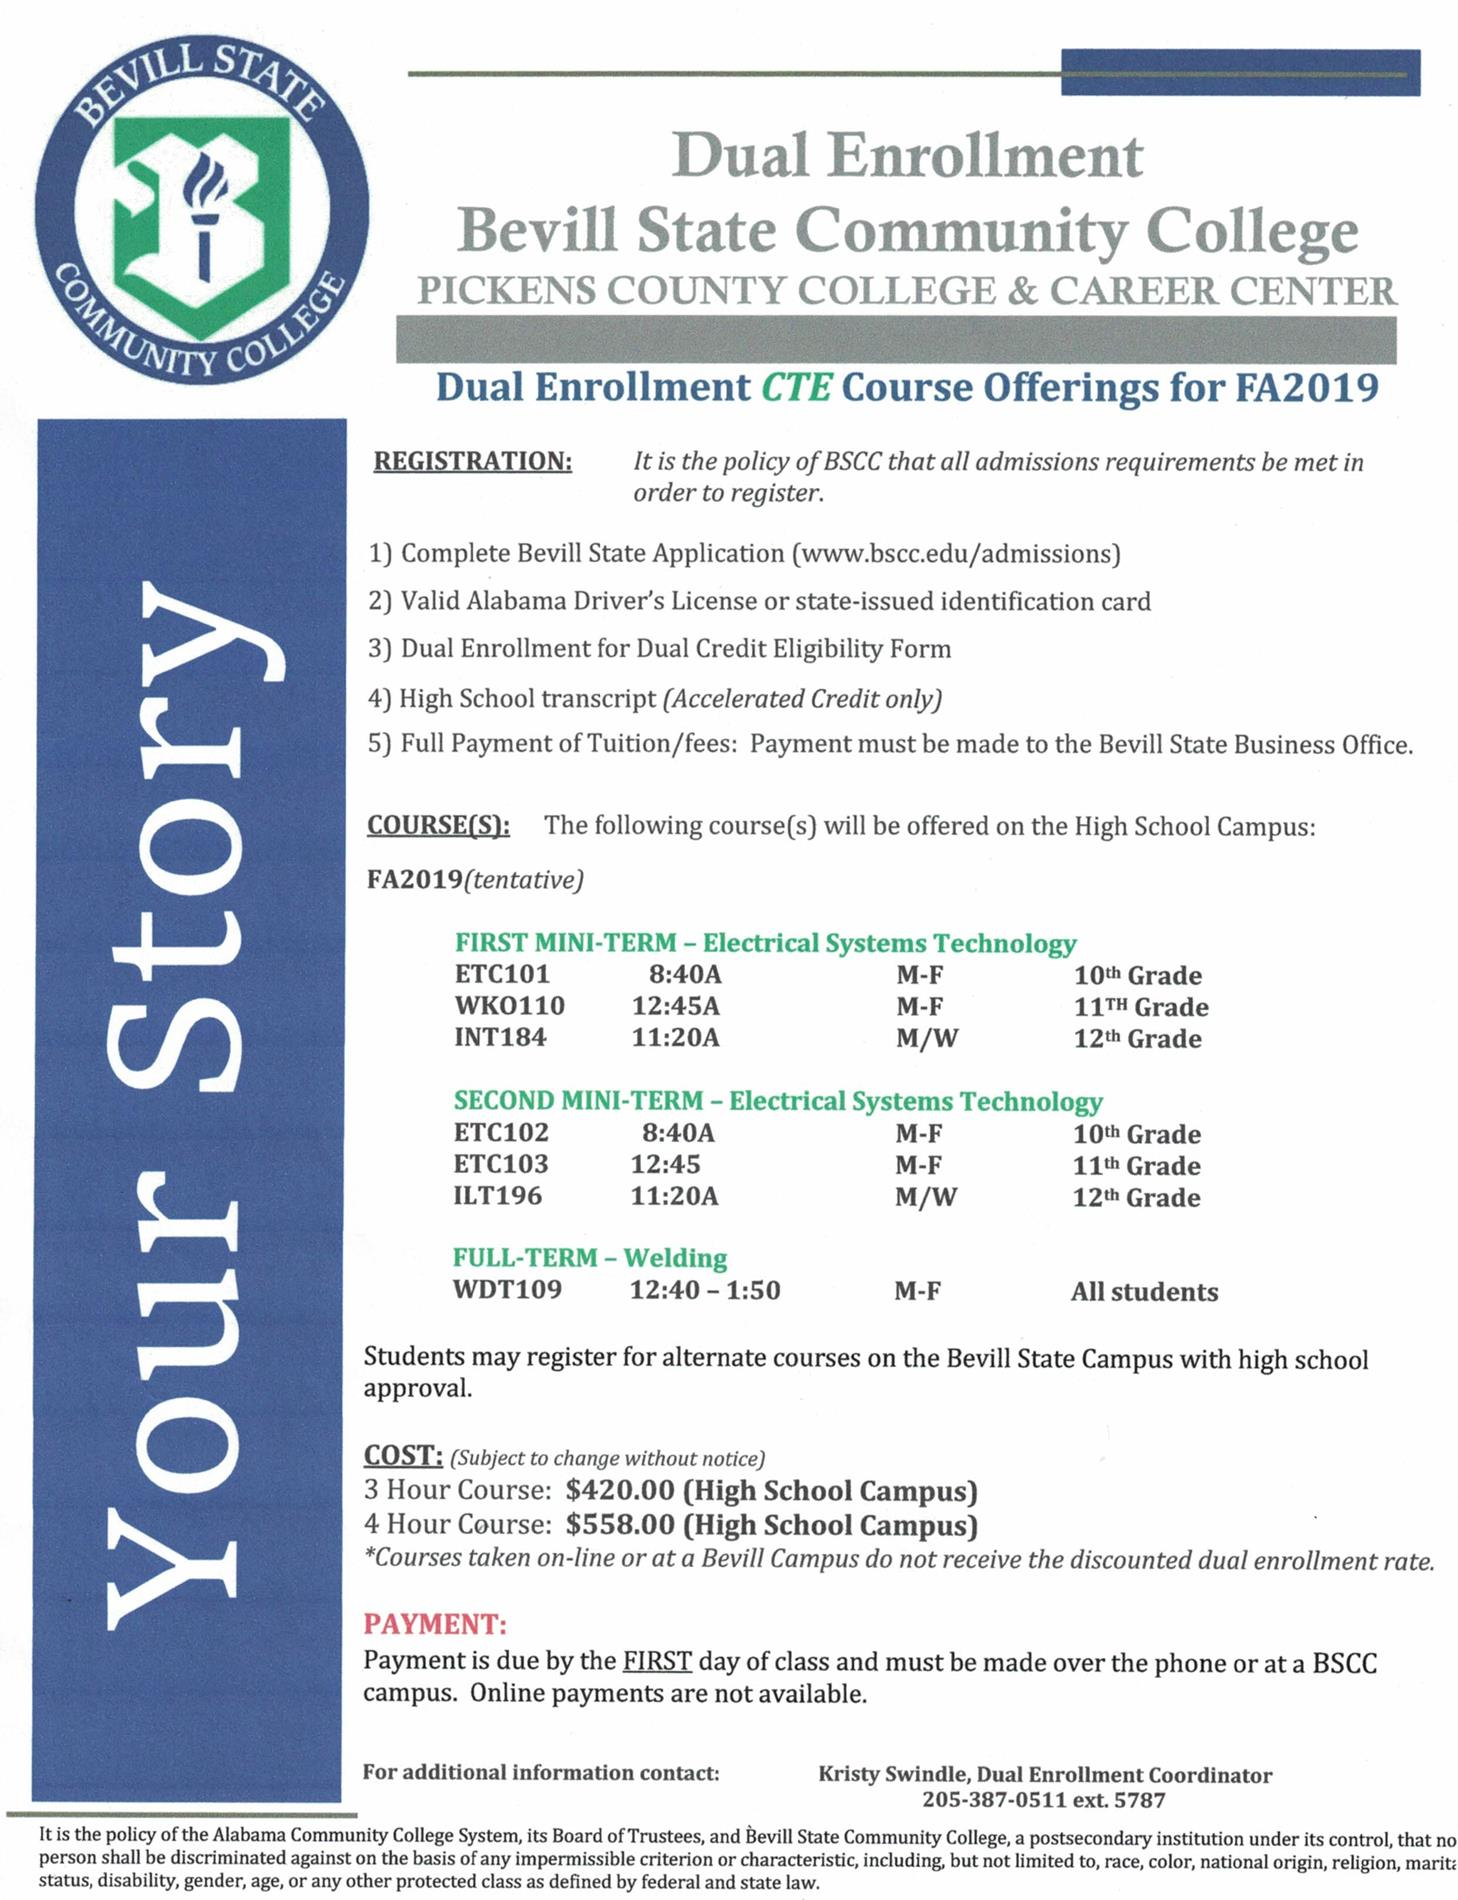 CTE course offerings